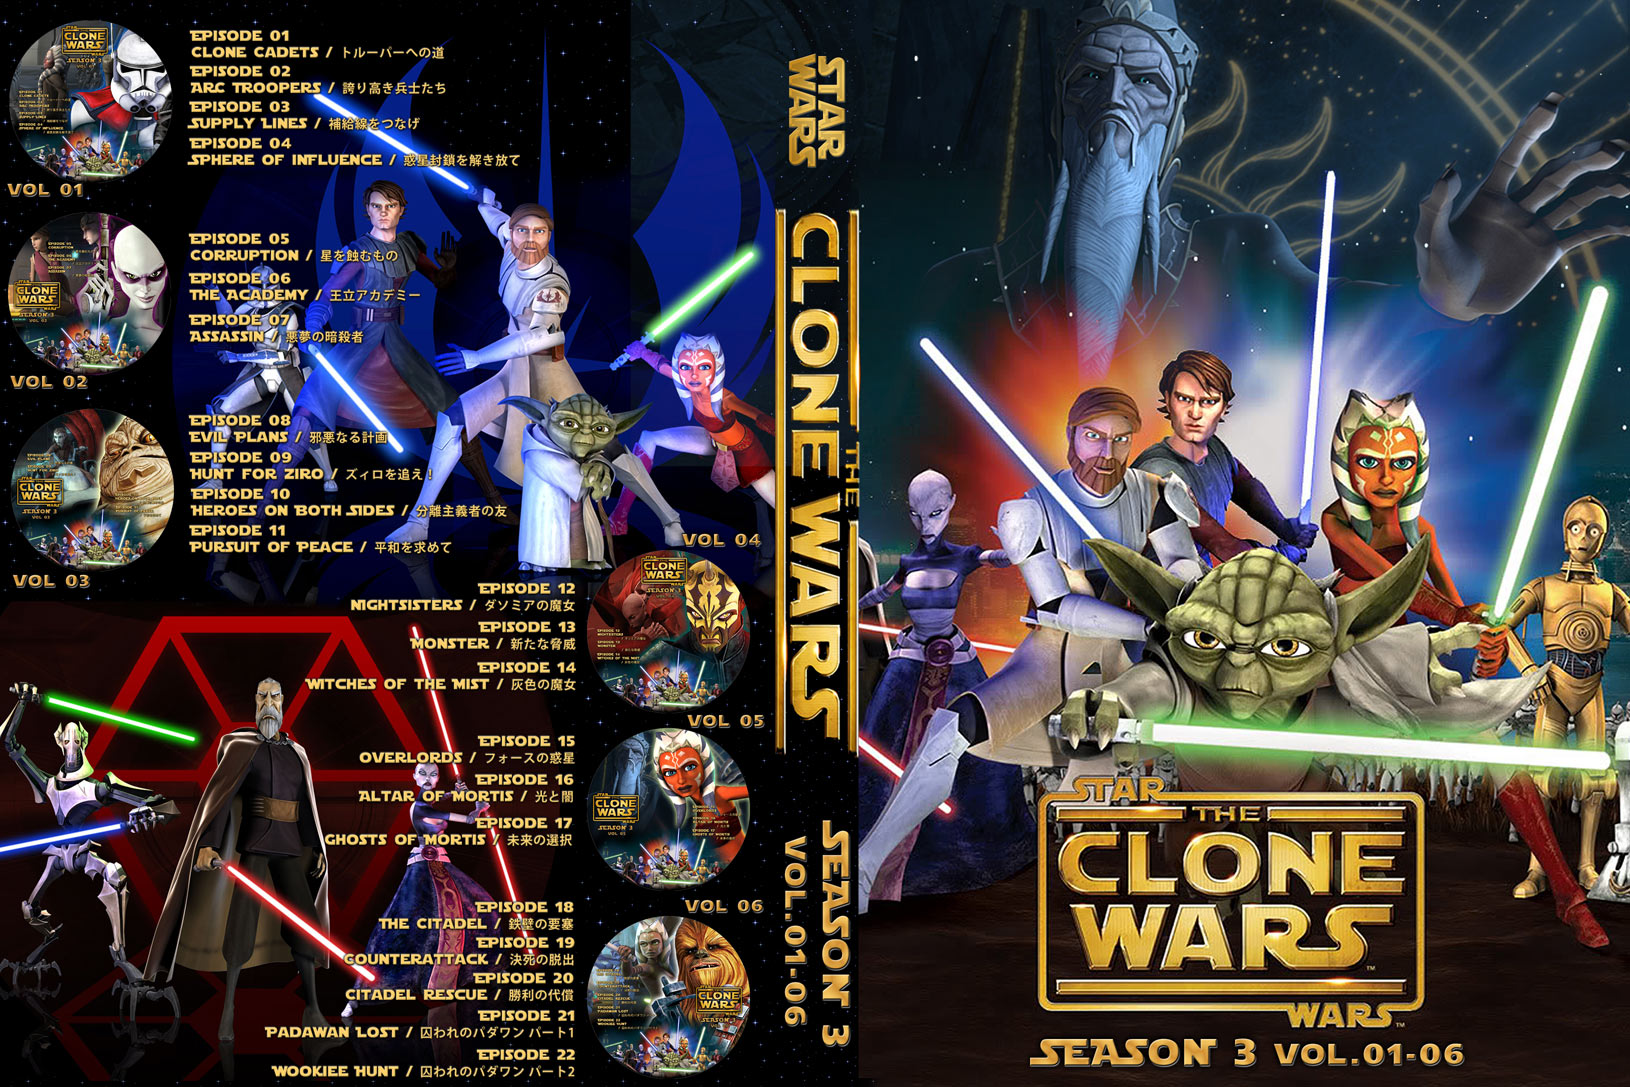 Star wars the clone wars season3 complete jacket